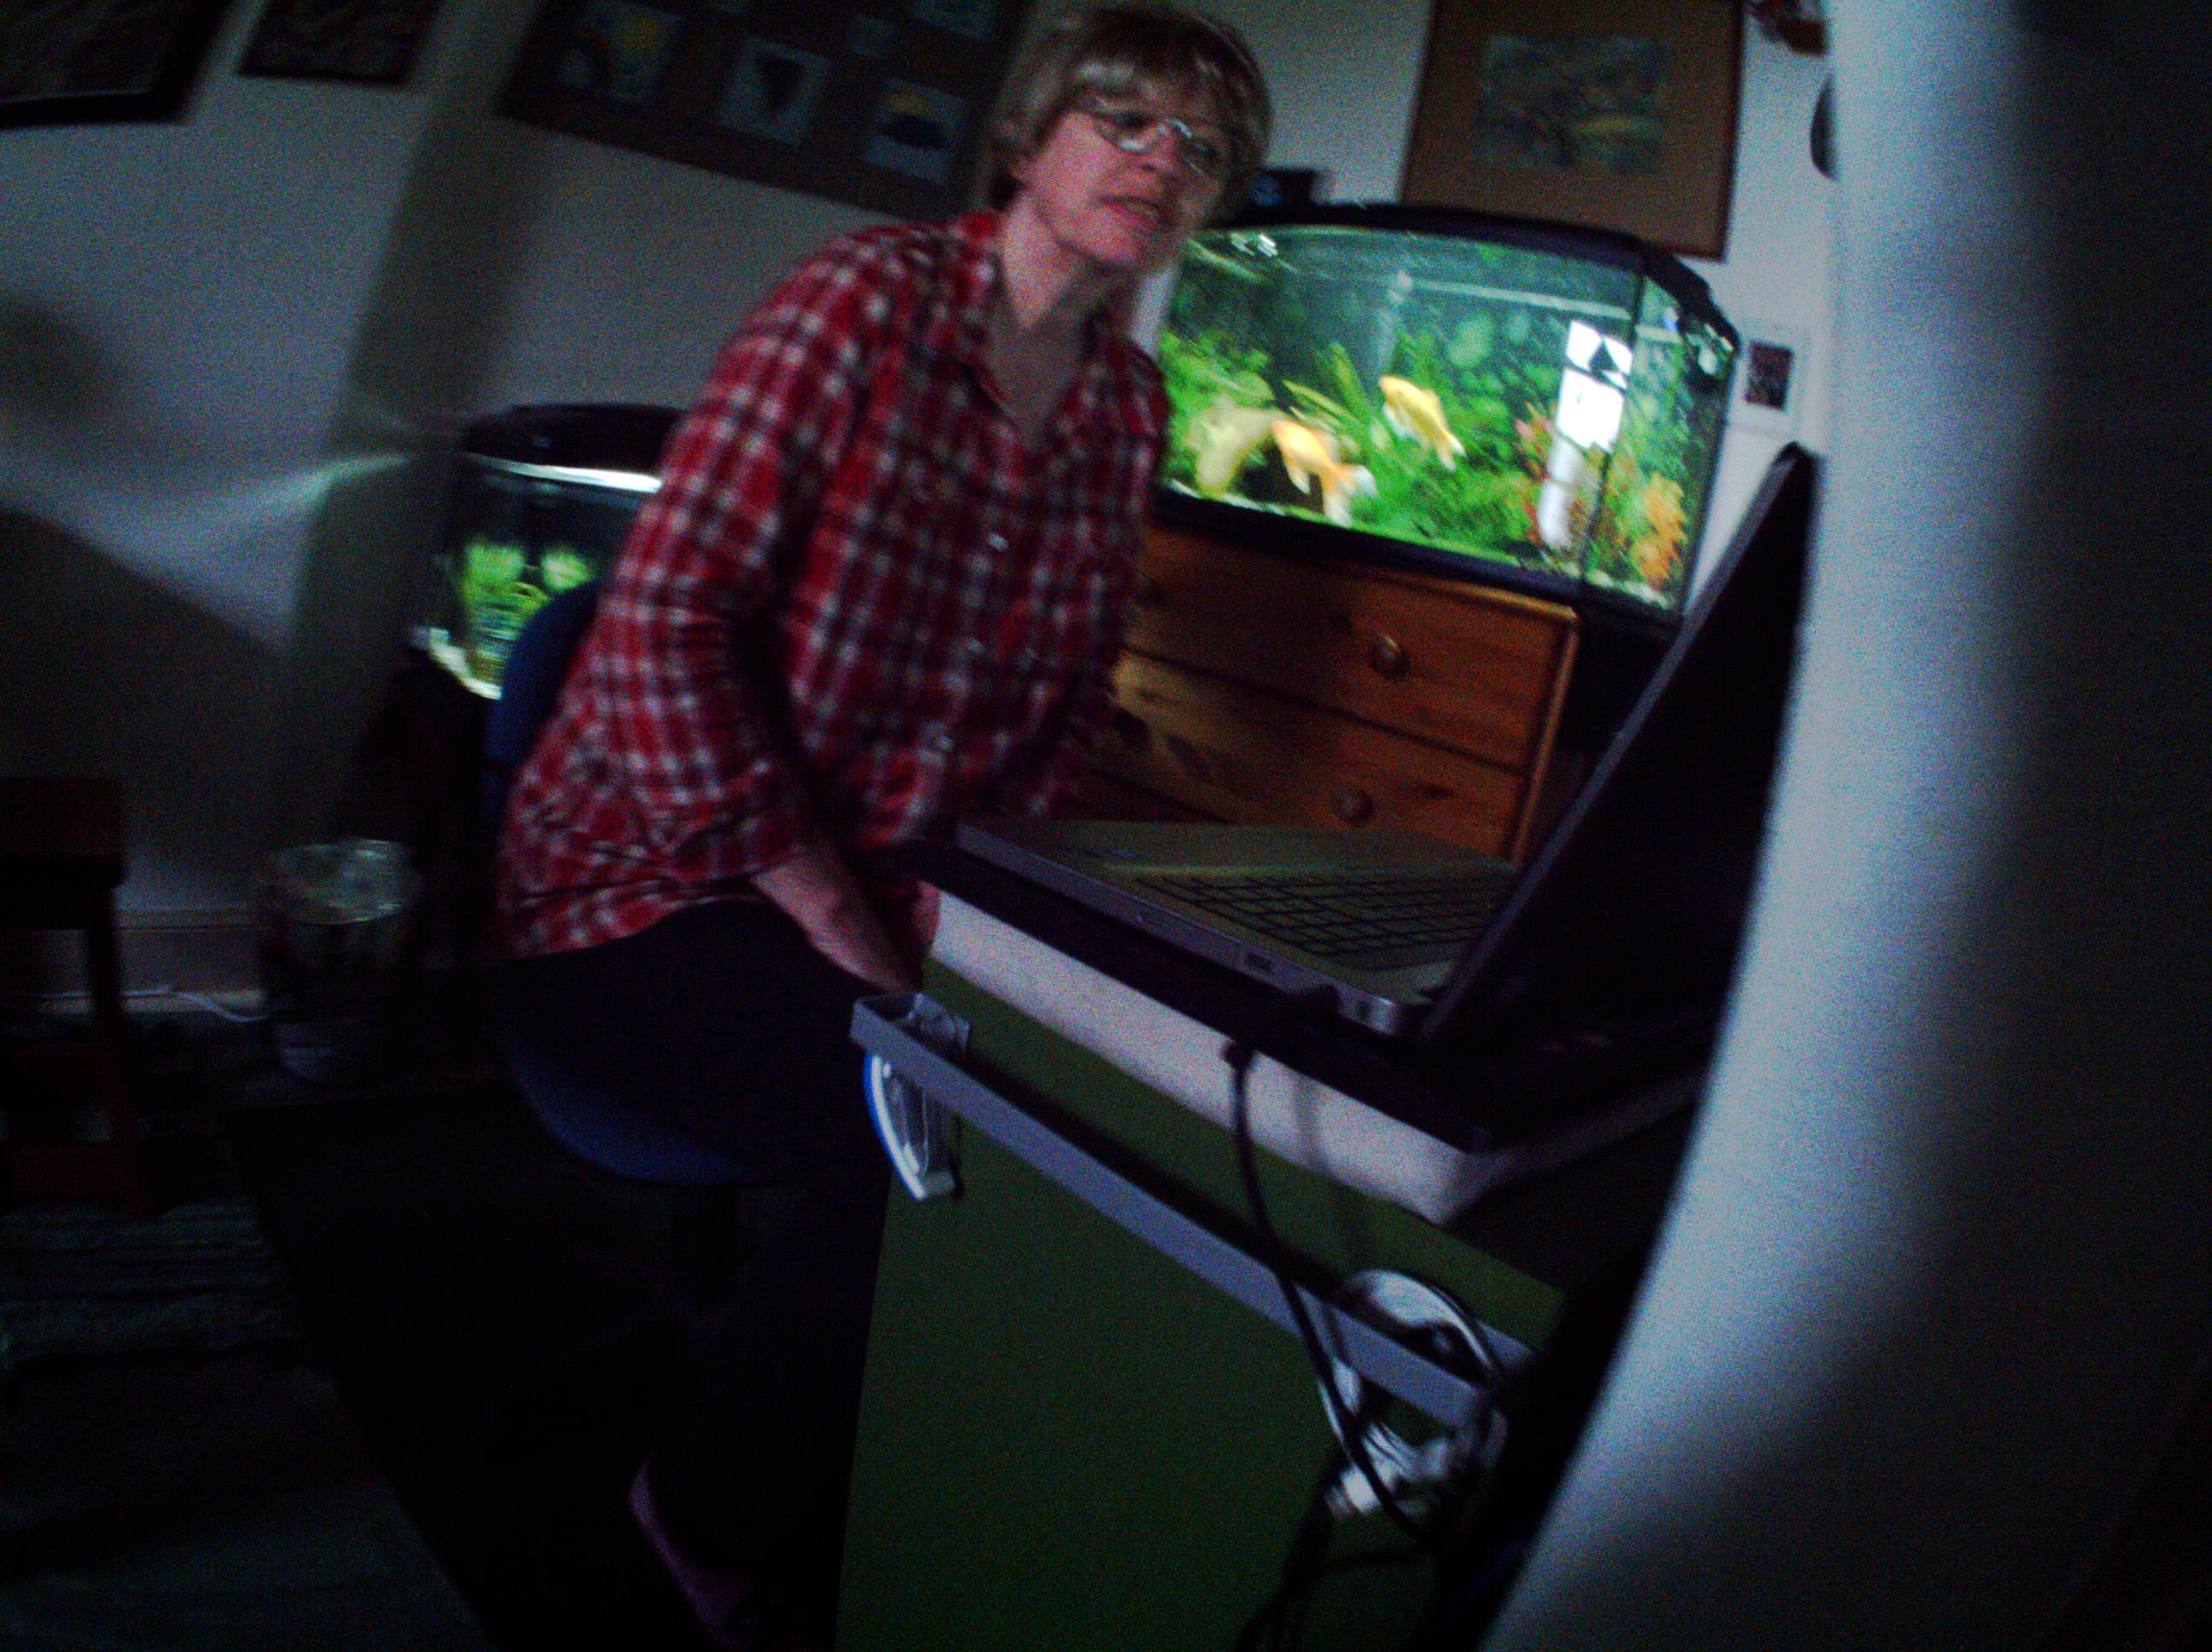 Autographer 2013 08 01 Kitchen Laptop